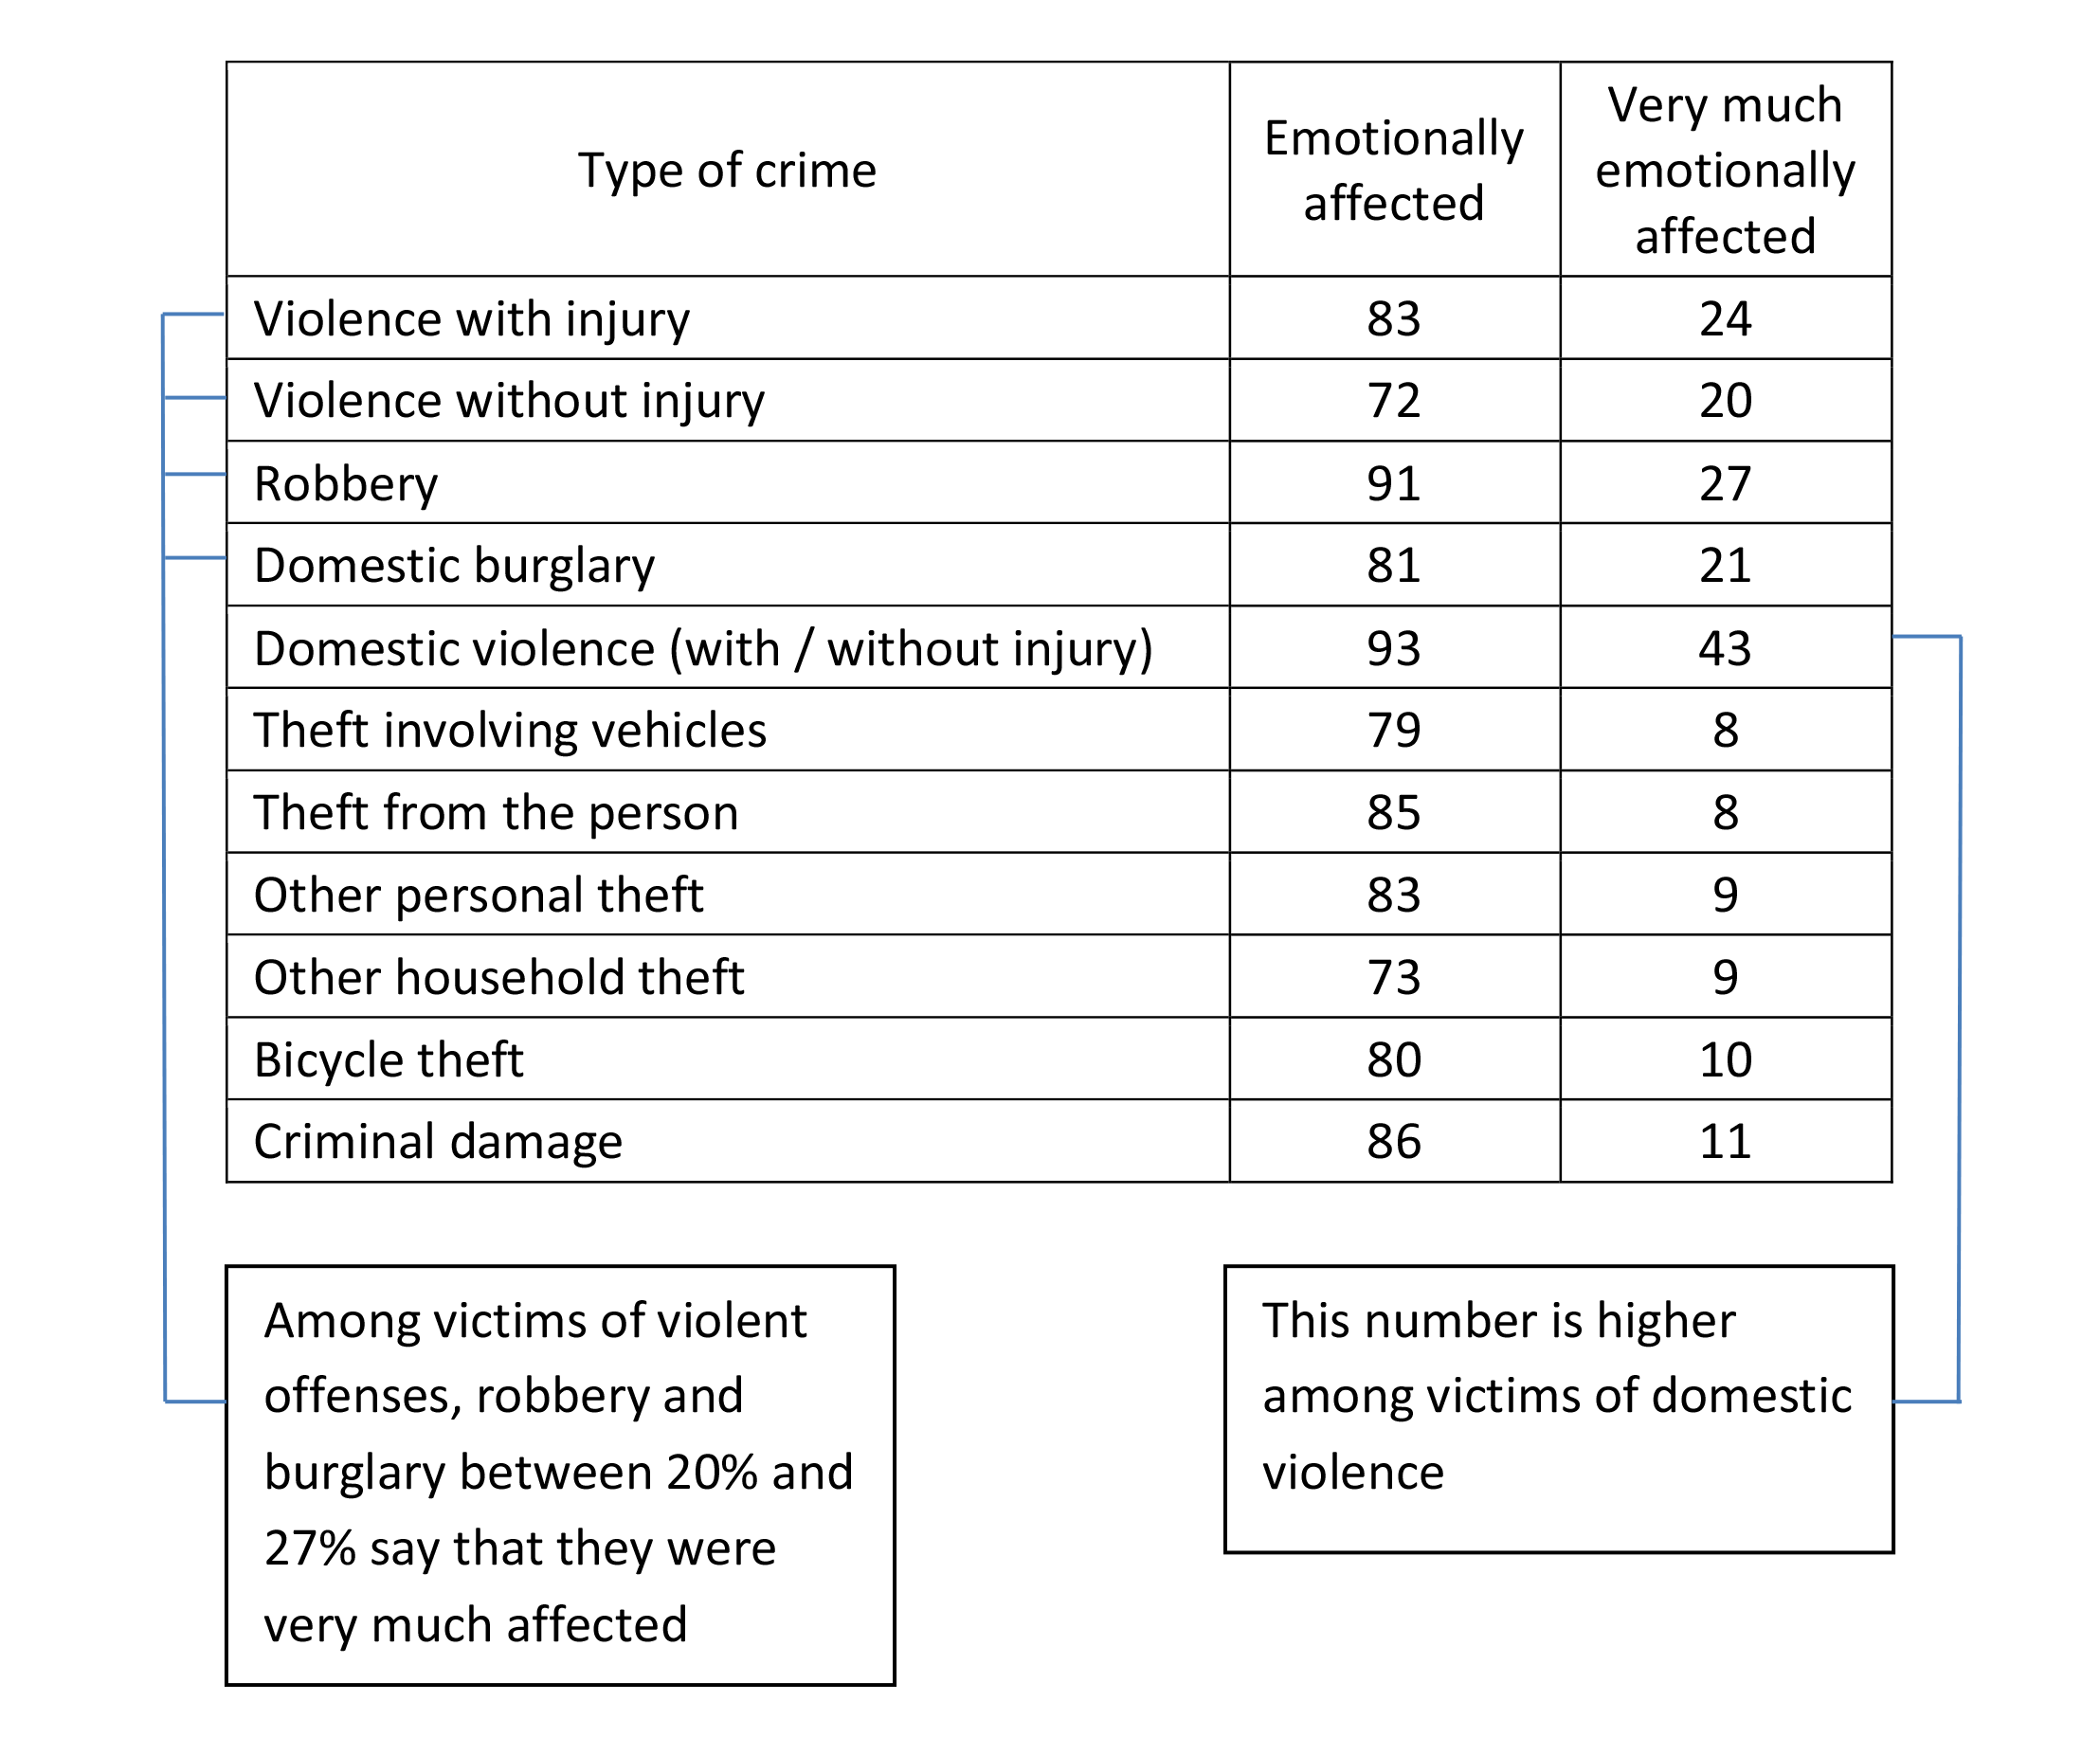 What are the effects of crime on victims and those close to